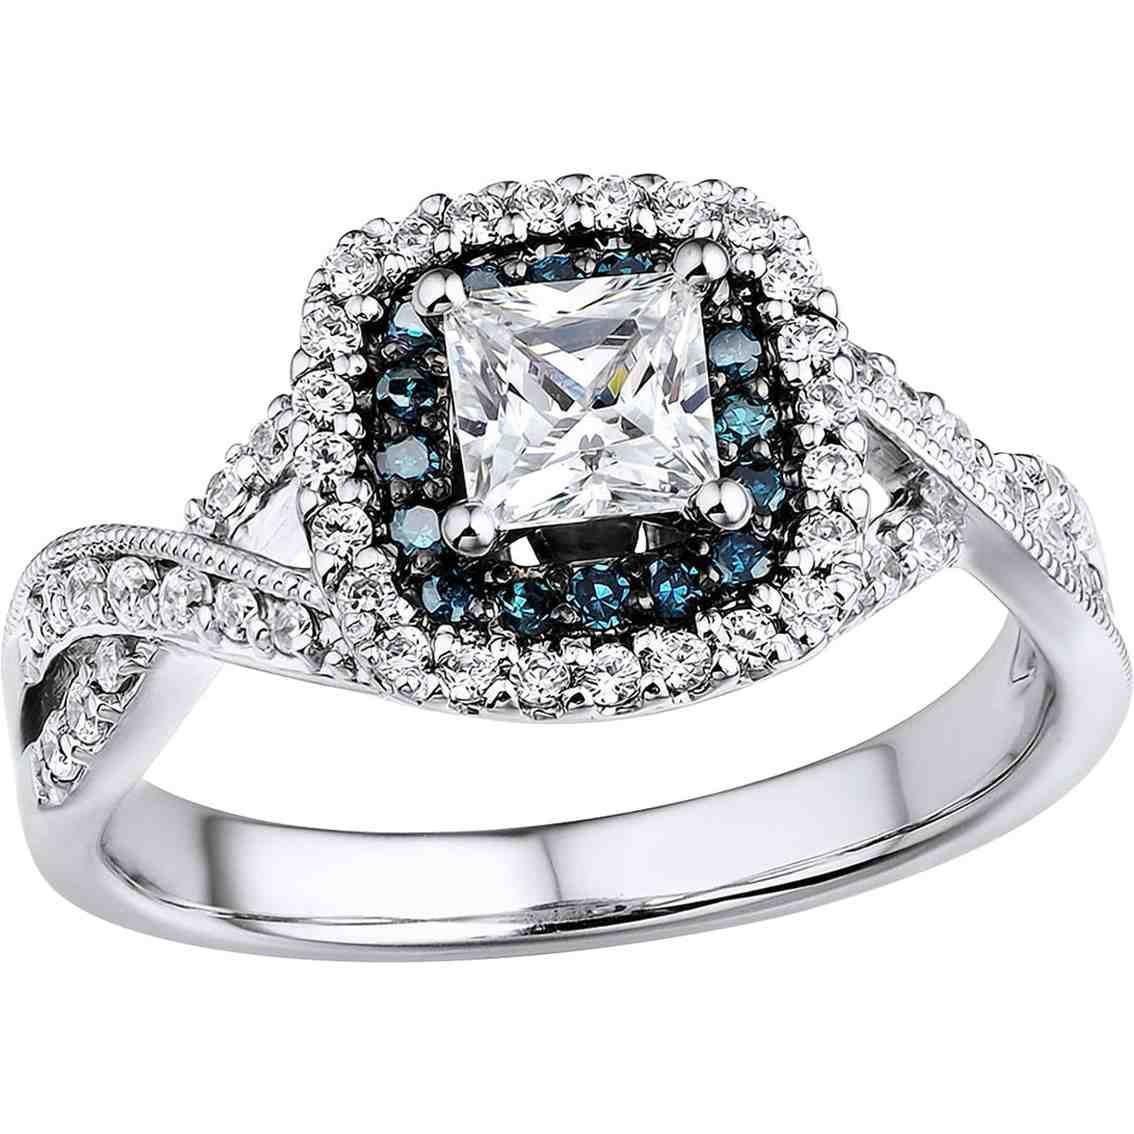 Engagement rings with black diamond accents jewellery pinterest